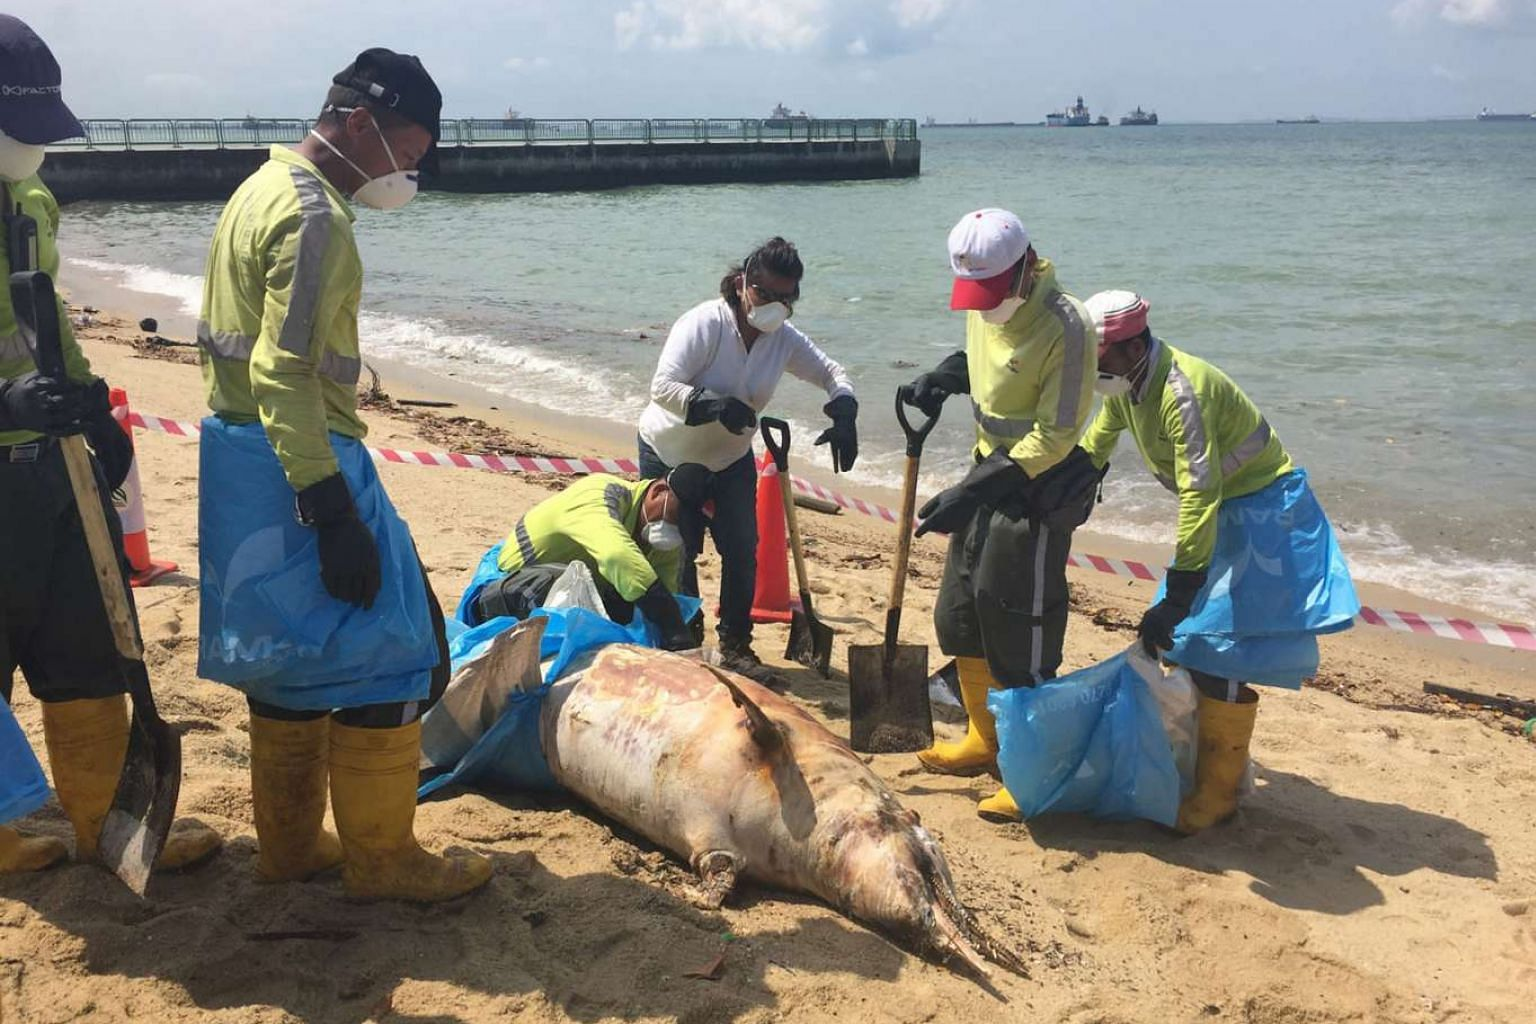 The dolphin carcass being removed by Ramky Cleantech Services workers yesterday. The workers poured disinfectant over the carcass and the surrounding area. They then wrapped it in trash bags and canvas sheets, before lifting it up with a large canvas bag